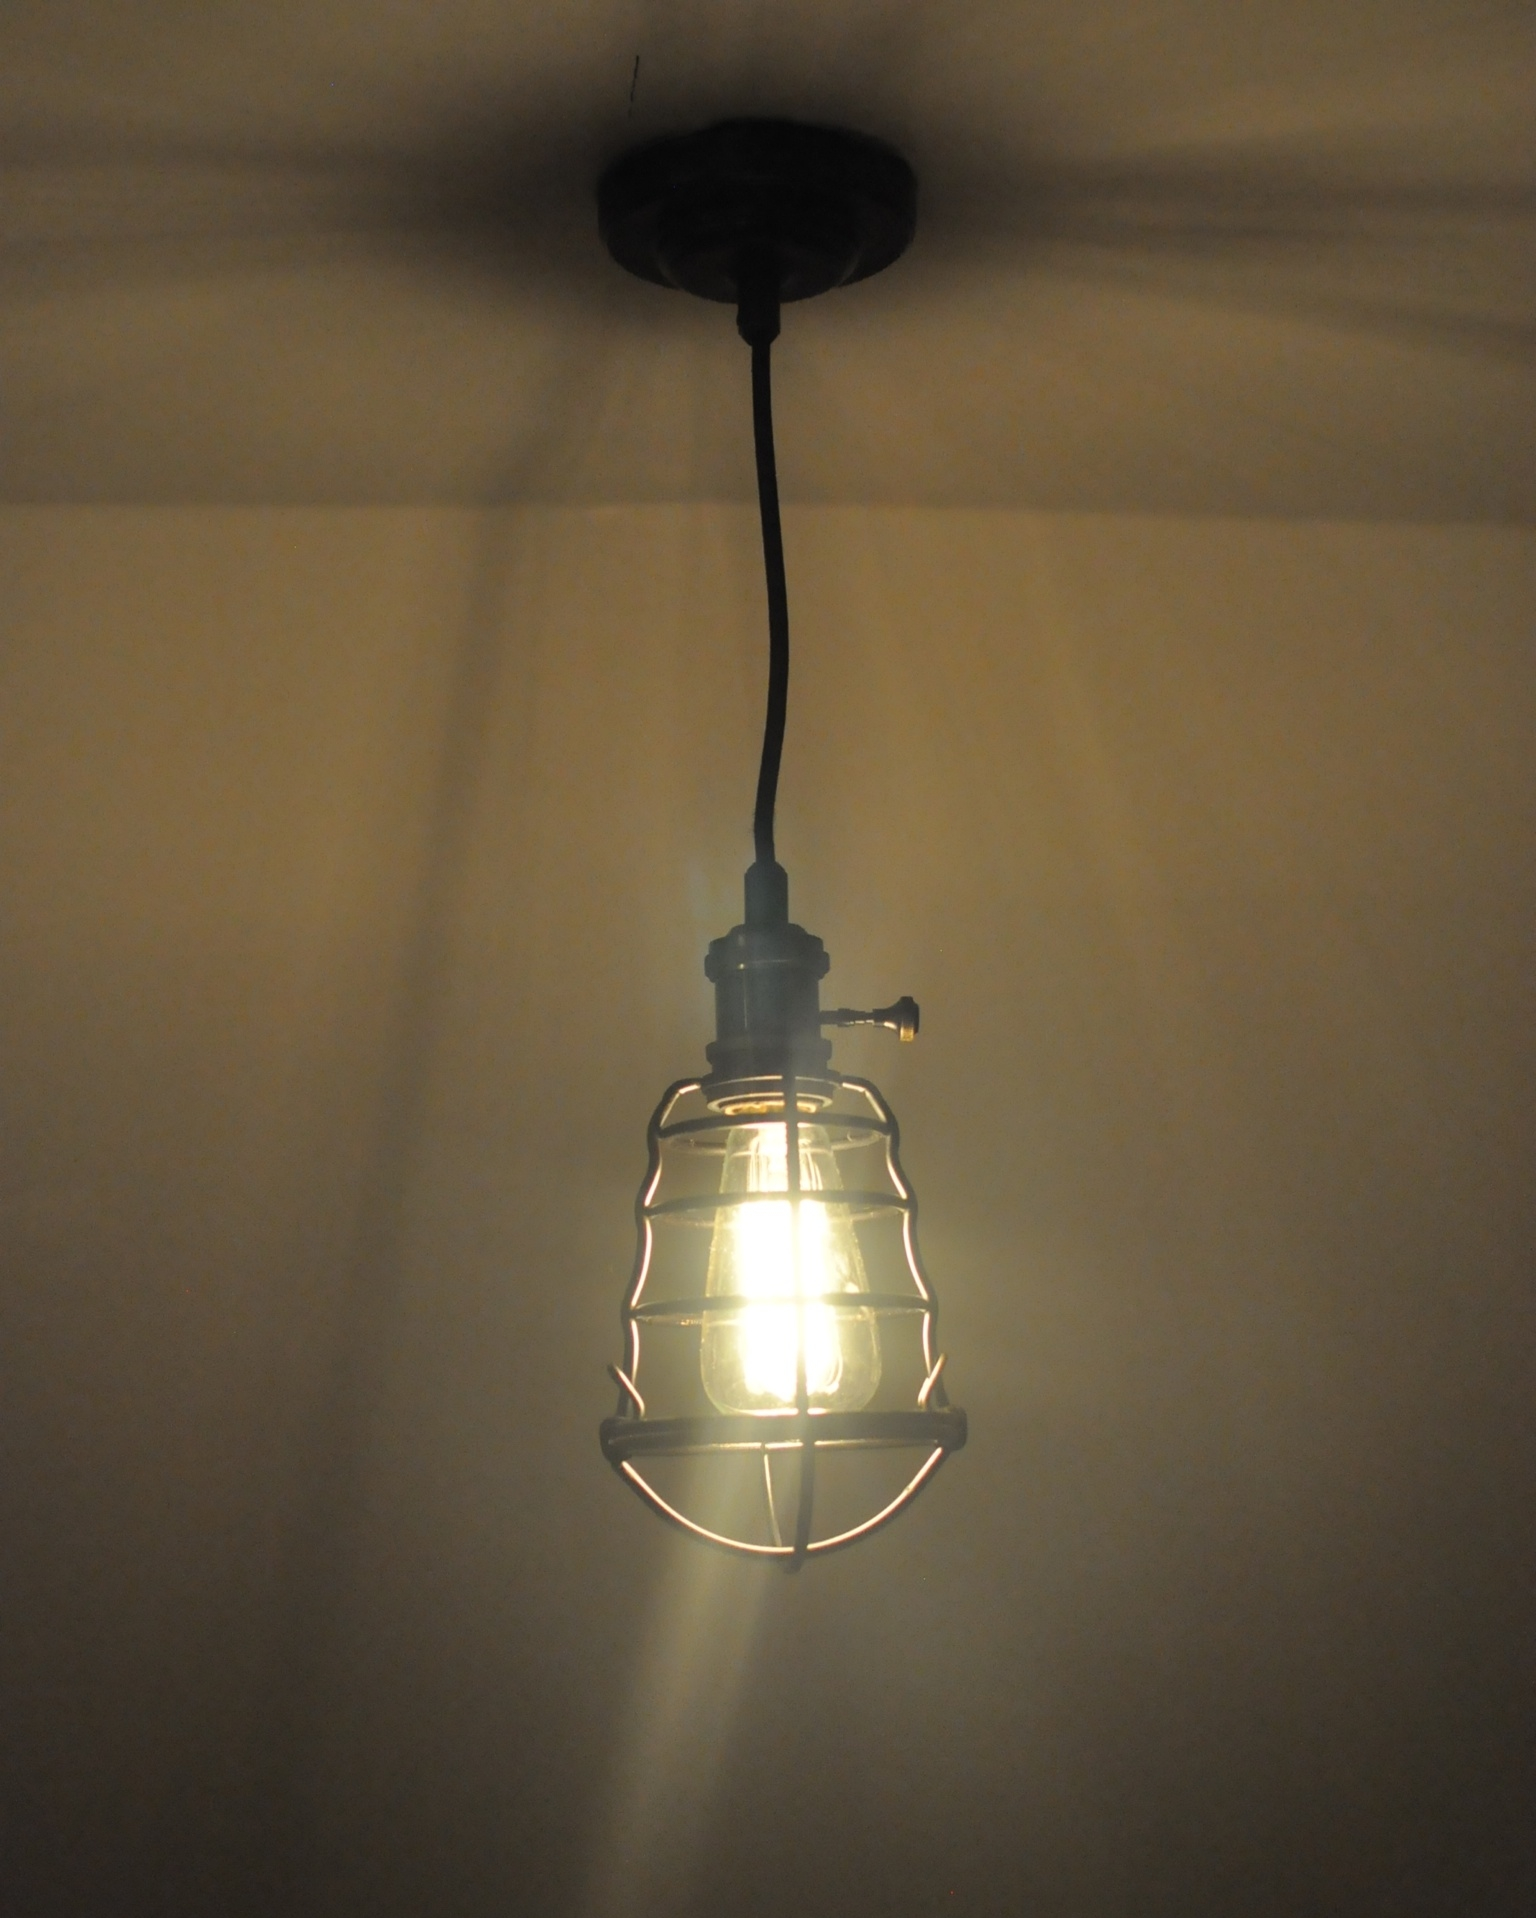 One challenge of the space was that the lightbulb socket over the bed didn't have it's own light switch, so I had to find a pendant fixture with a pull chain or turnkey. Most of the cool ones I found were pretty expensive on Etsy, but thankfully I found a more reasonable option at Home Depot.